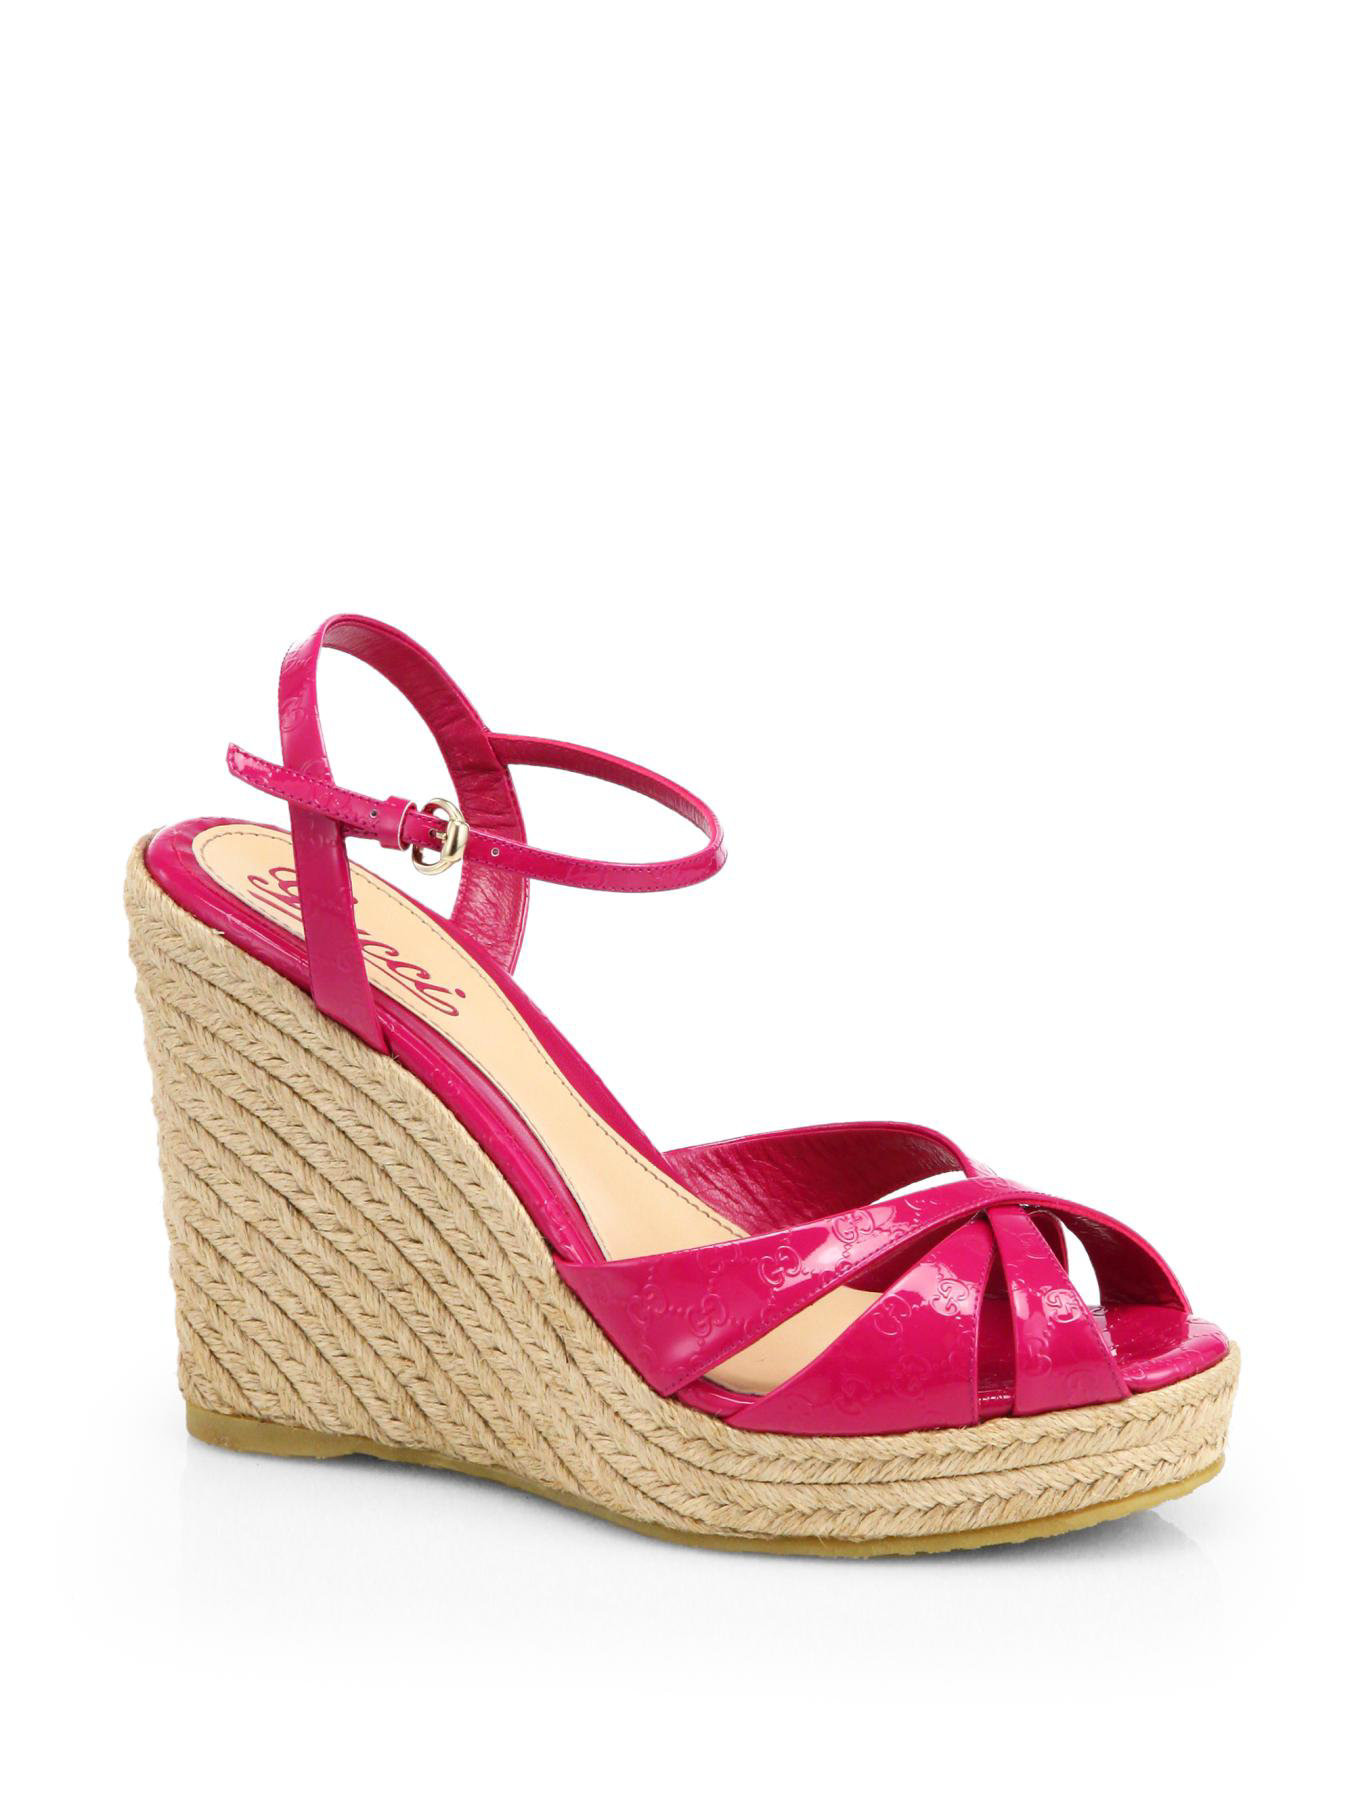 a61716d8bf2 Lyst - Gucci Penelope Logo Patent Leather Espadrille Wedge Sandals ...